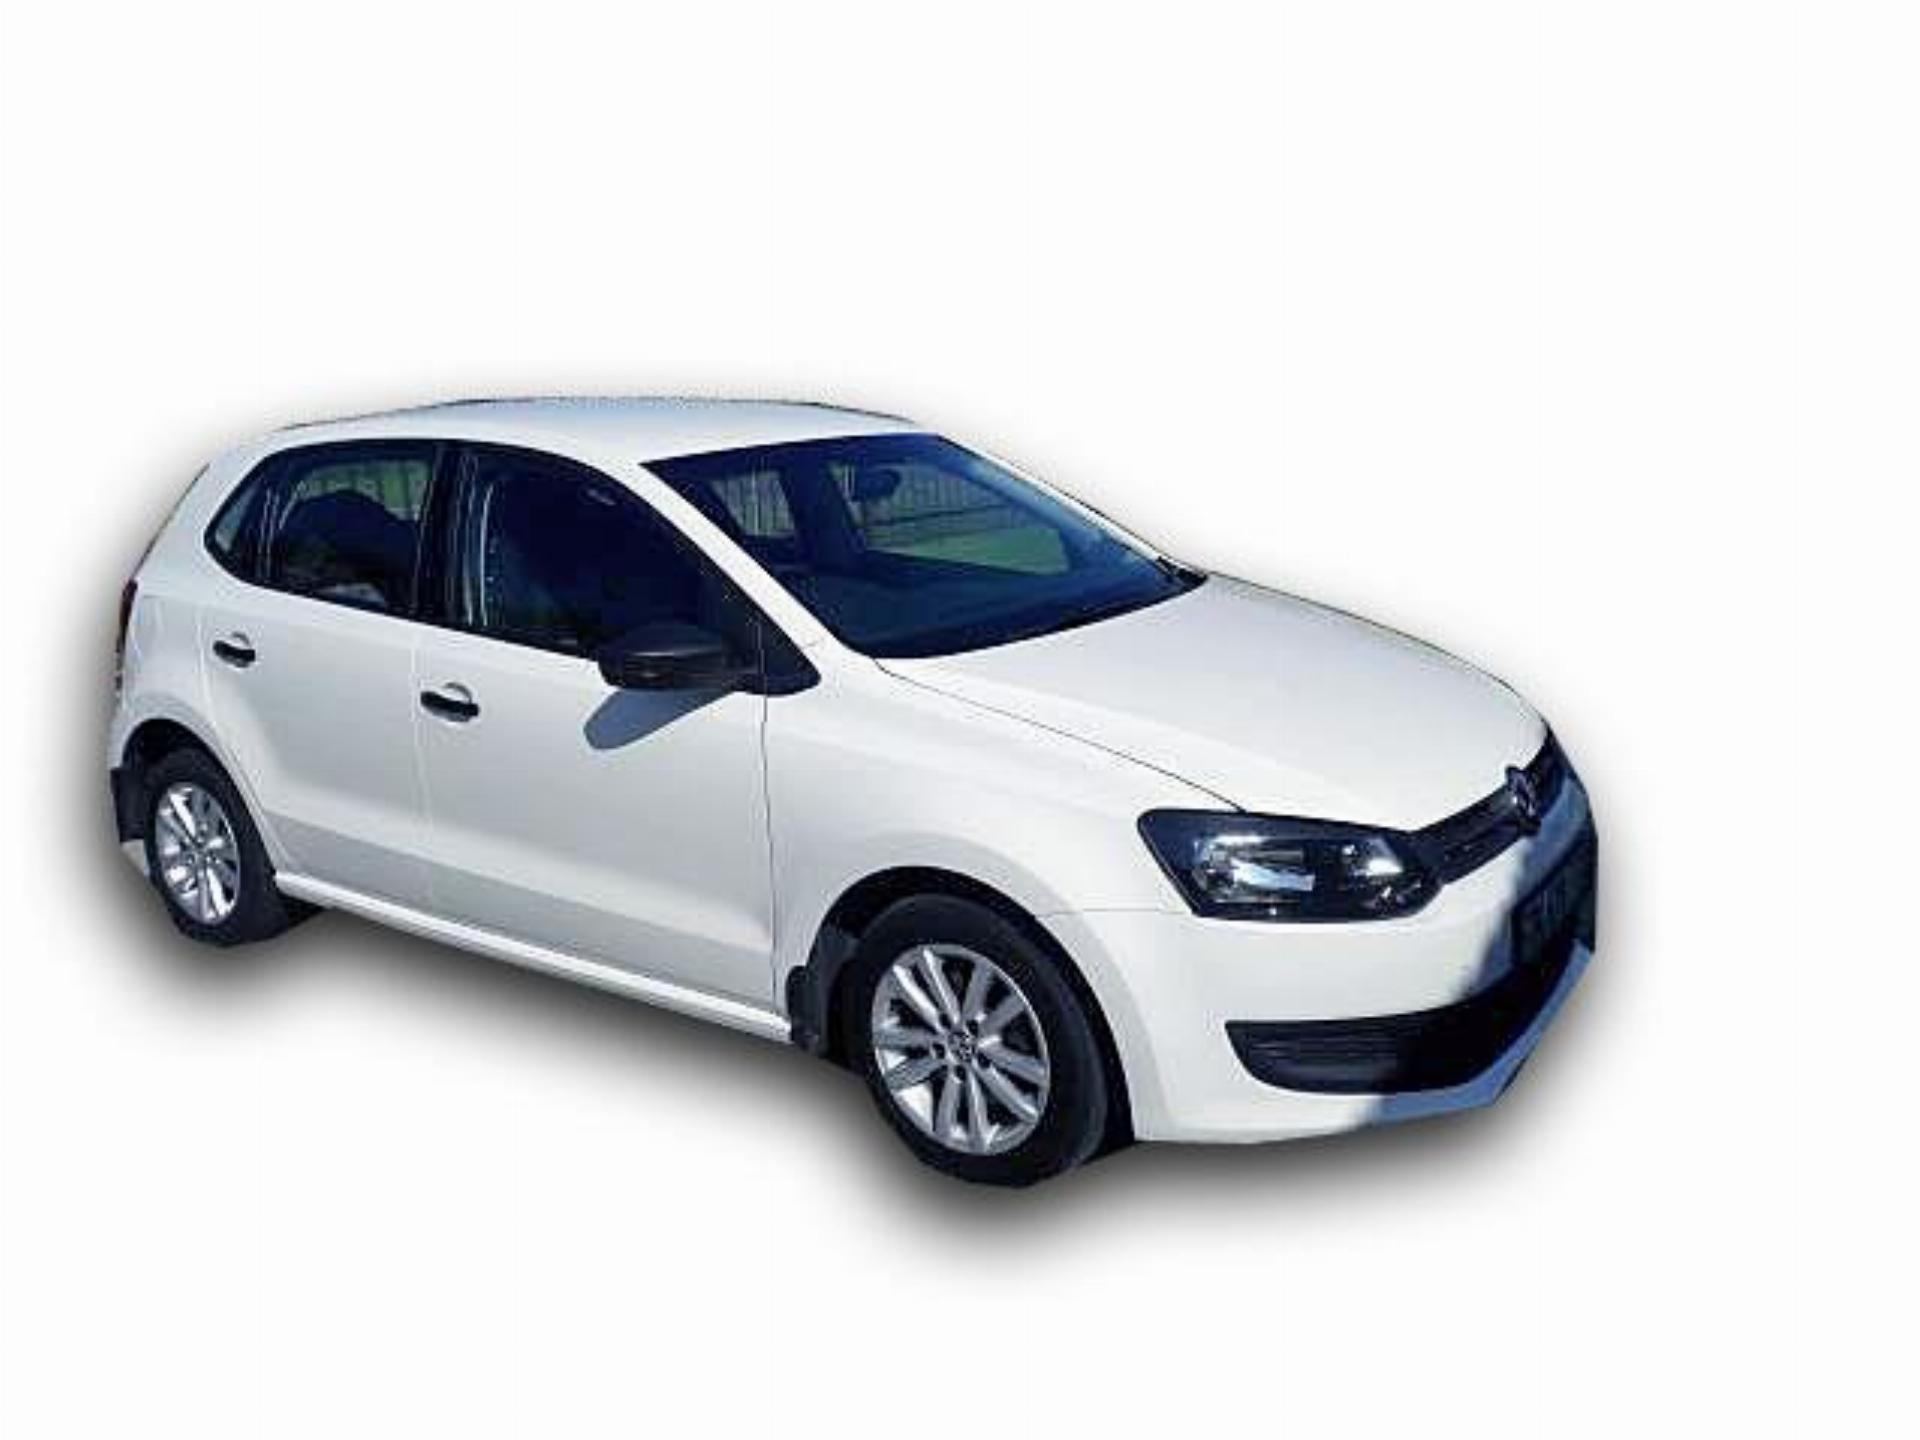 Volkswagen Golf Vii Polo 1.4 Trendline Hatch